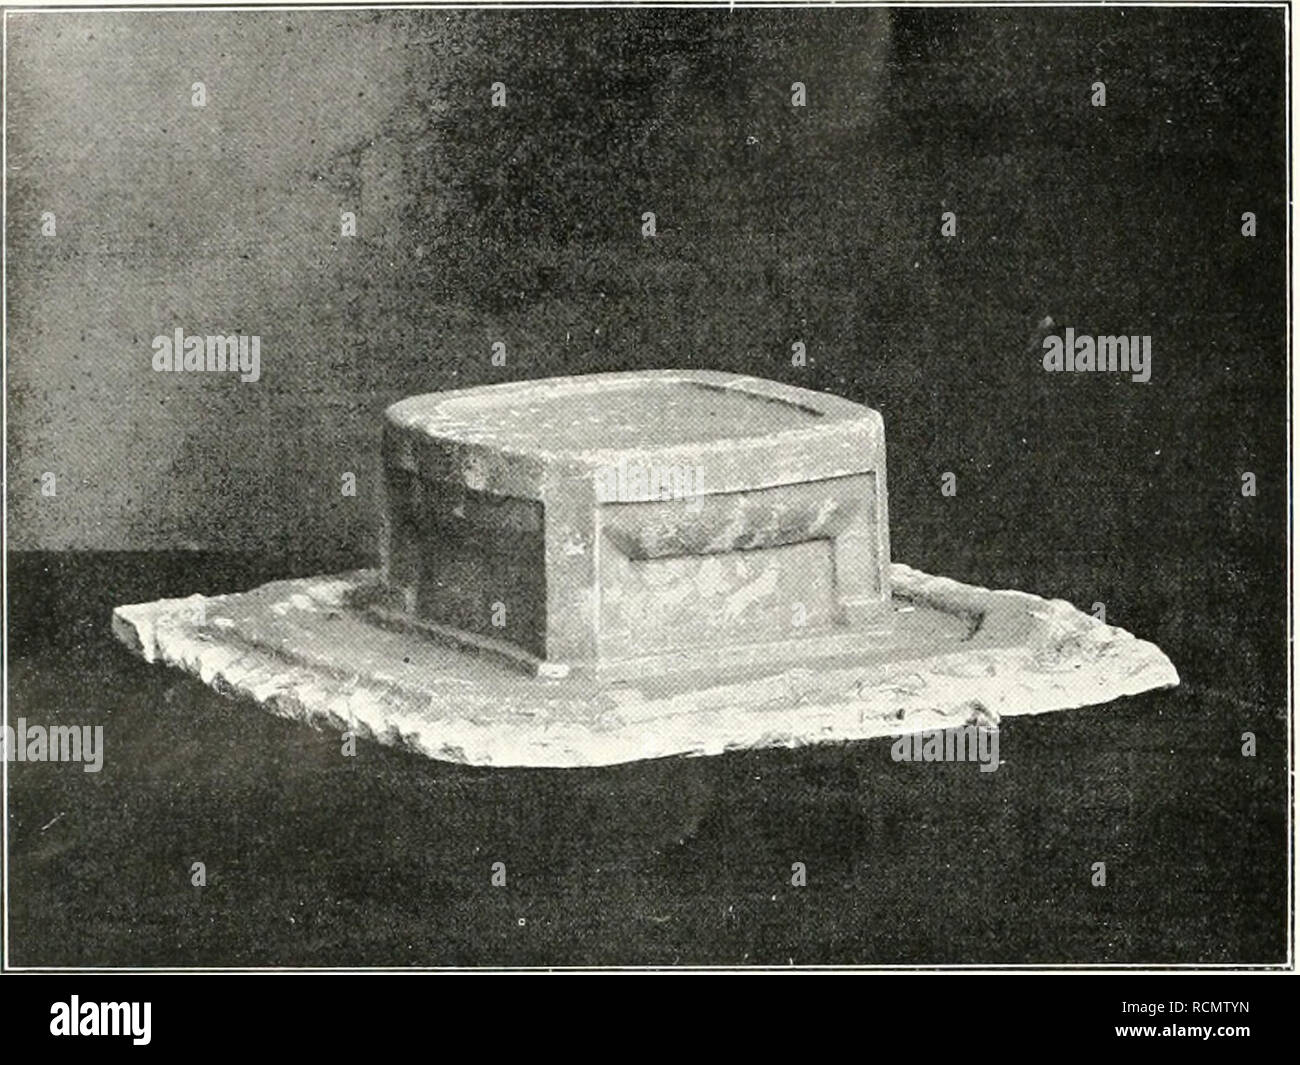 Dr Draeger Stock Photos & Dr Draeger Stock Images - Alamy